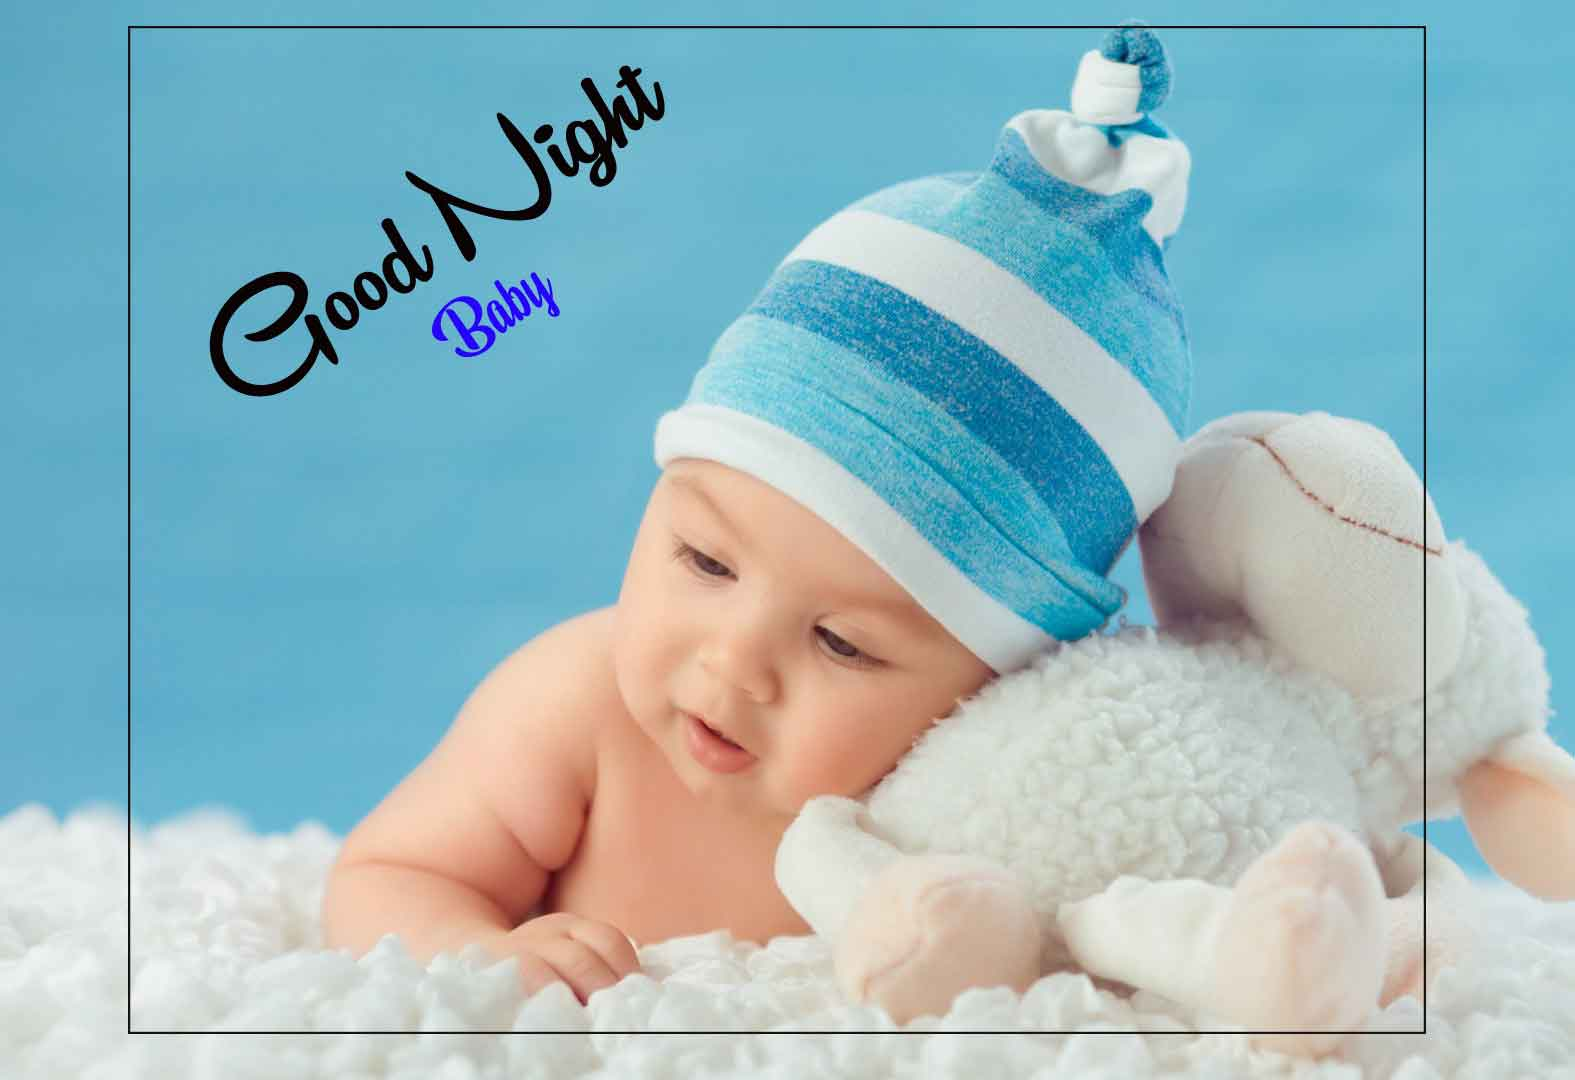 New Top good night cute baby Images